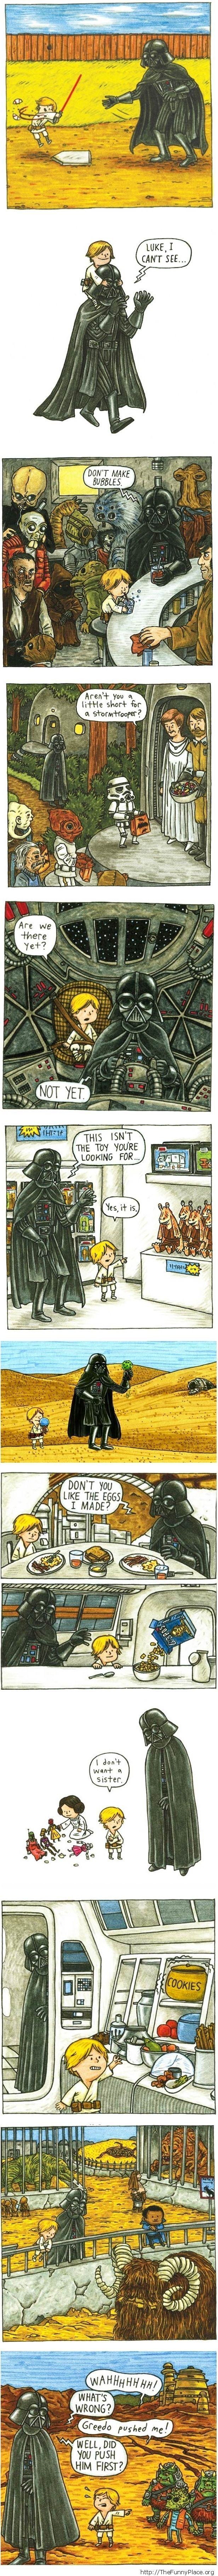 Funny Star Wars - Vader and Luke